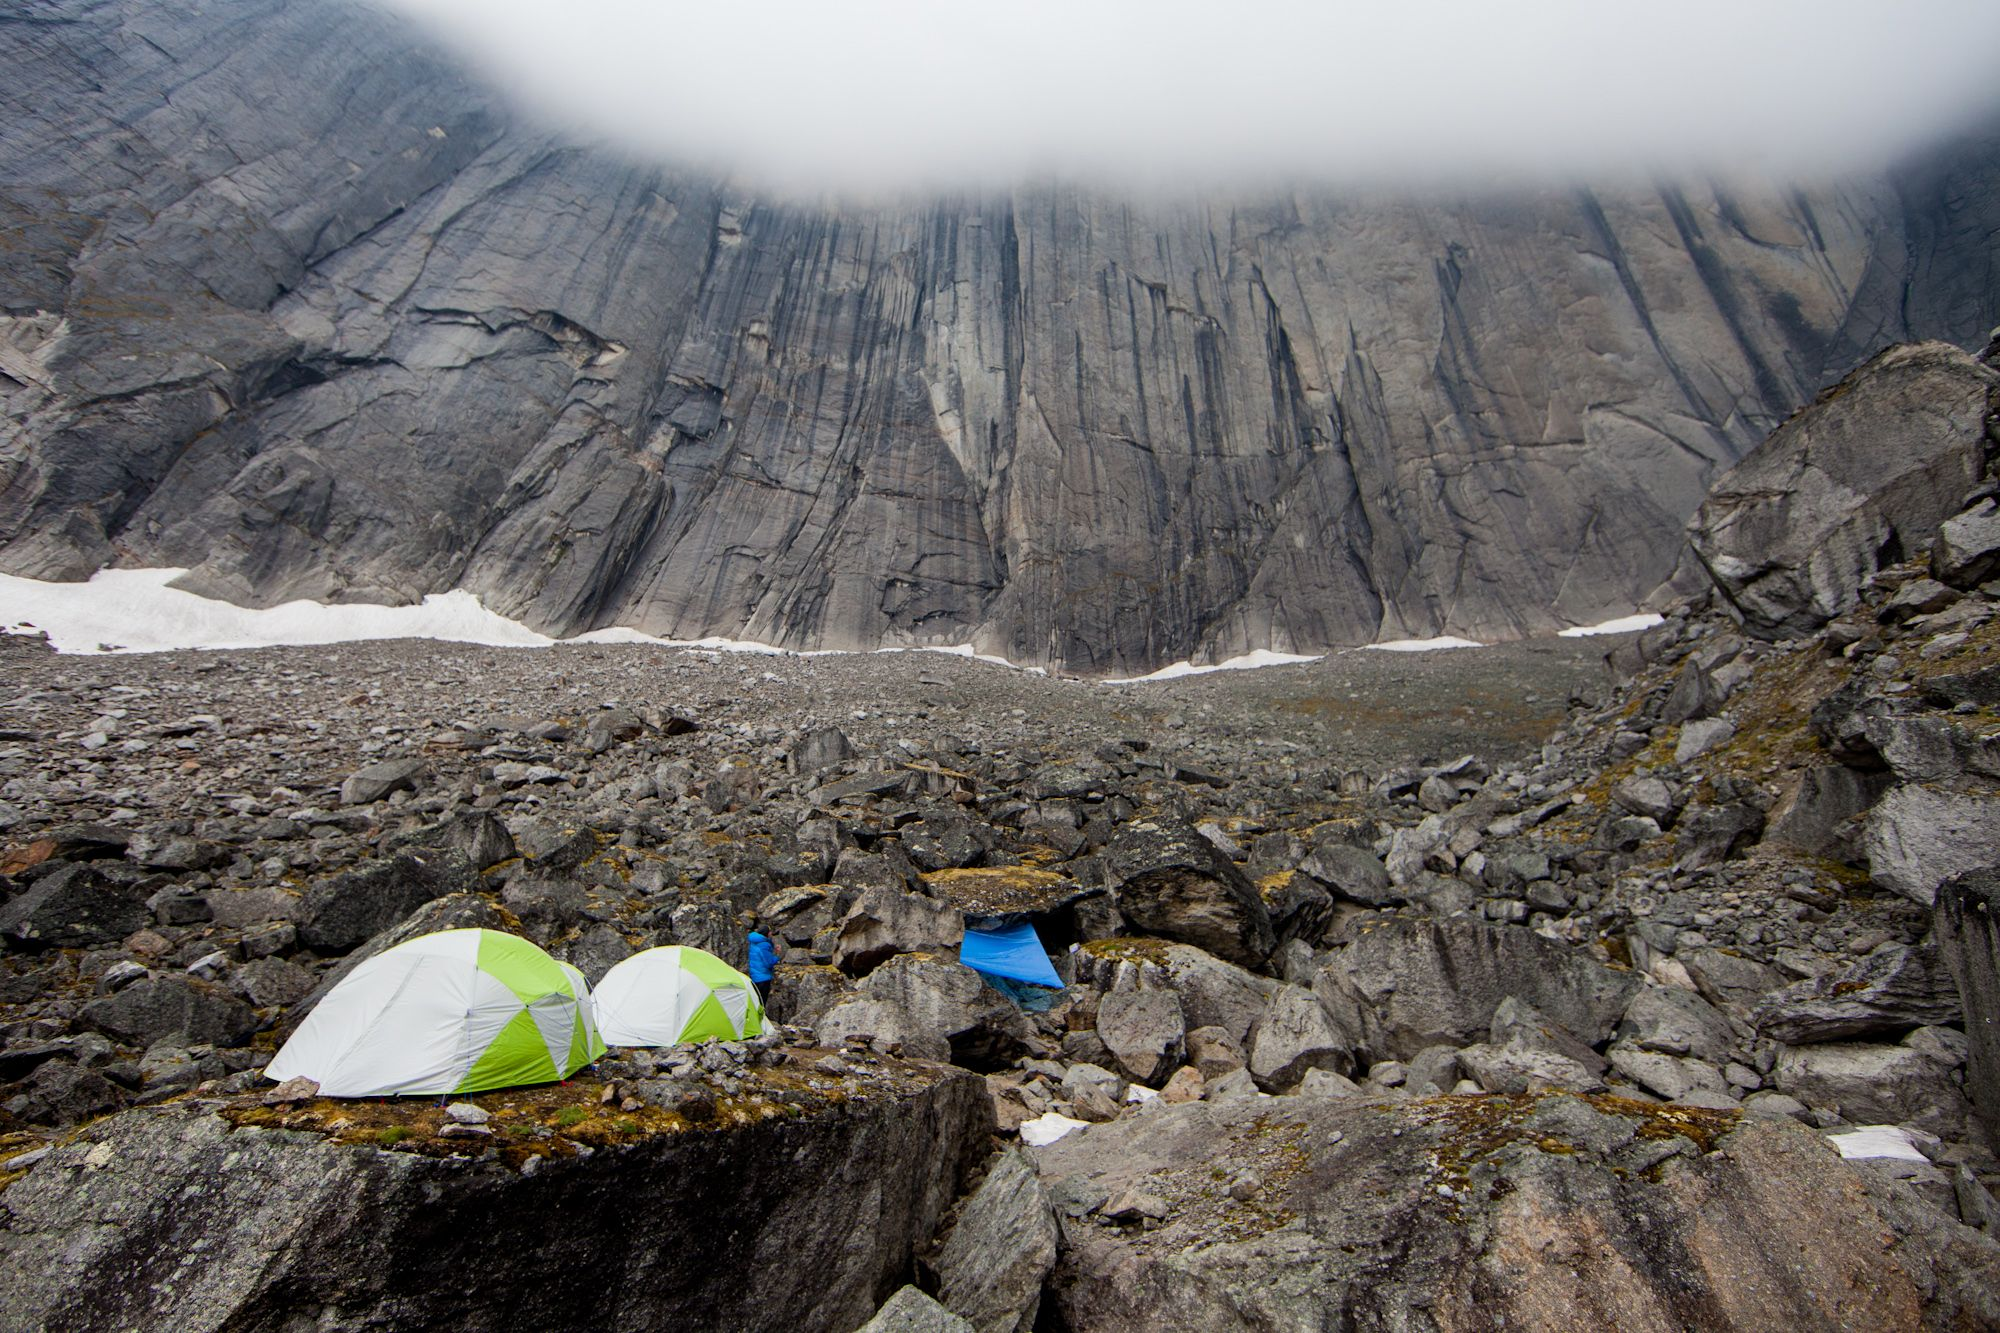 Huddled in Katabatic Tents, waiting out the weather at Mt.Proboscis base camp | #LiveYourAdventure #GearUpLoadUp